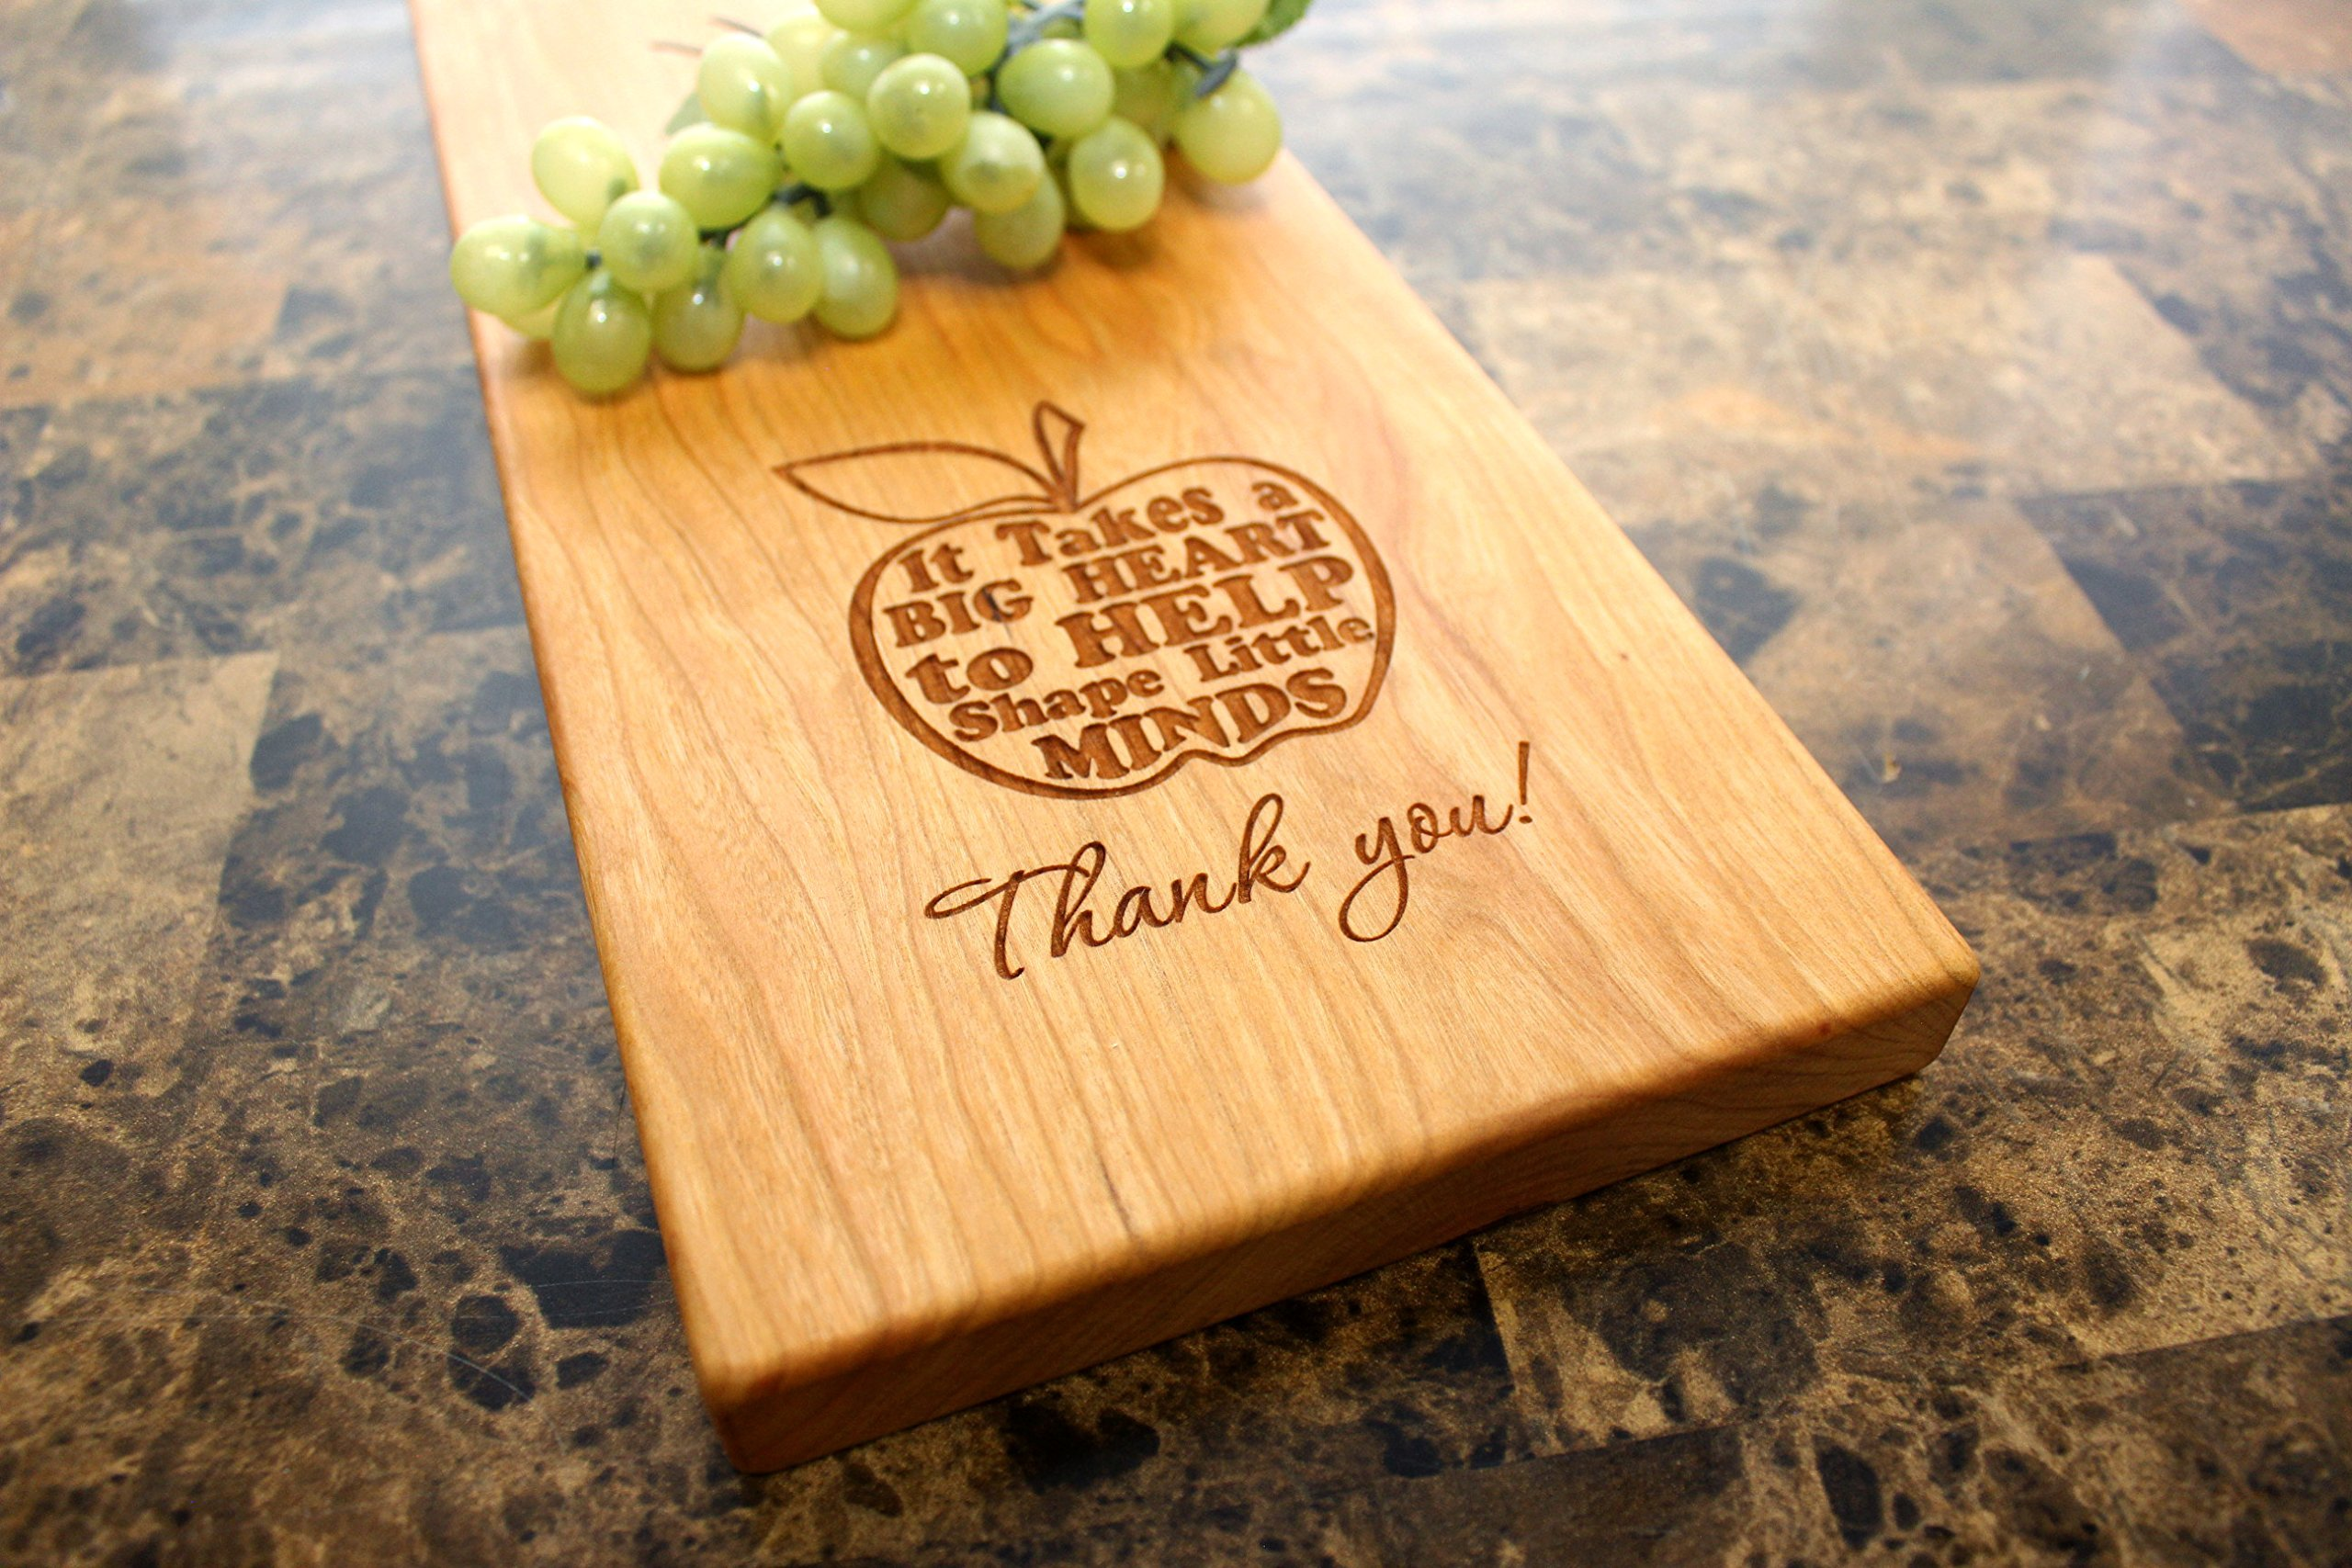 Personalized Cherry Cheese Board - Cheese Plate, Serving Platter, Gift for Teacher, Unique Gift Idea, School Gift, Thank You Present, Education, Saying, Quote. #949